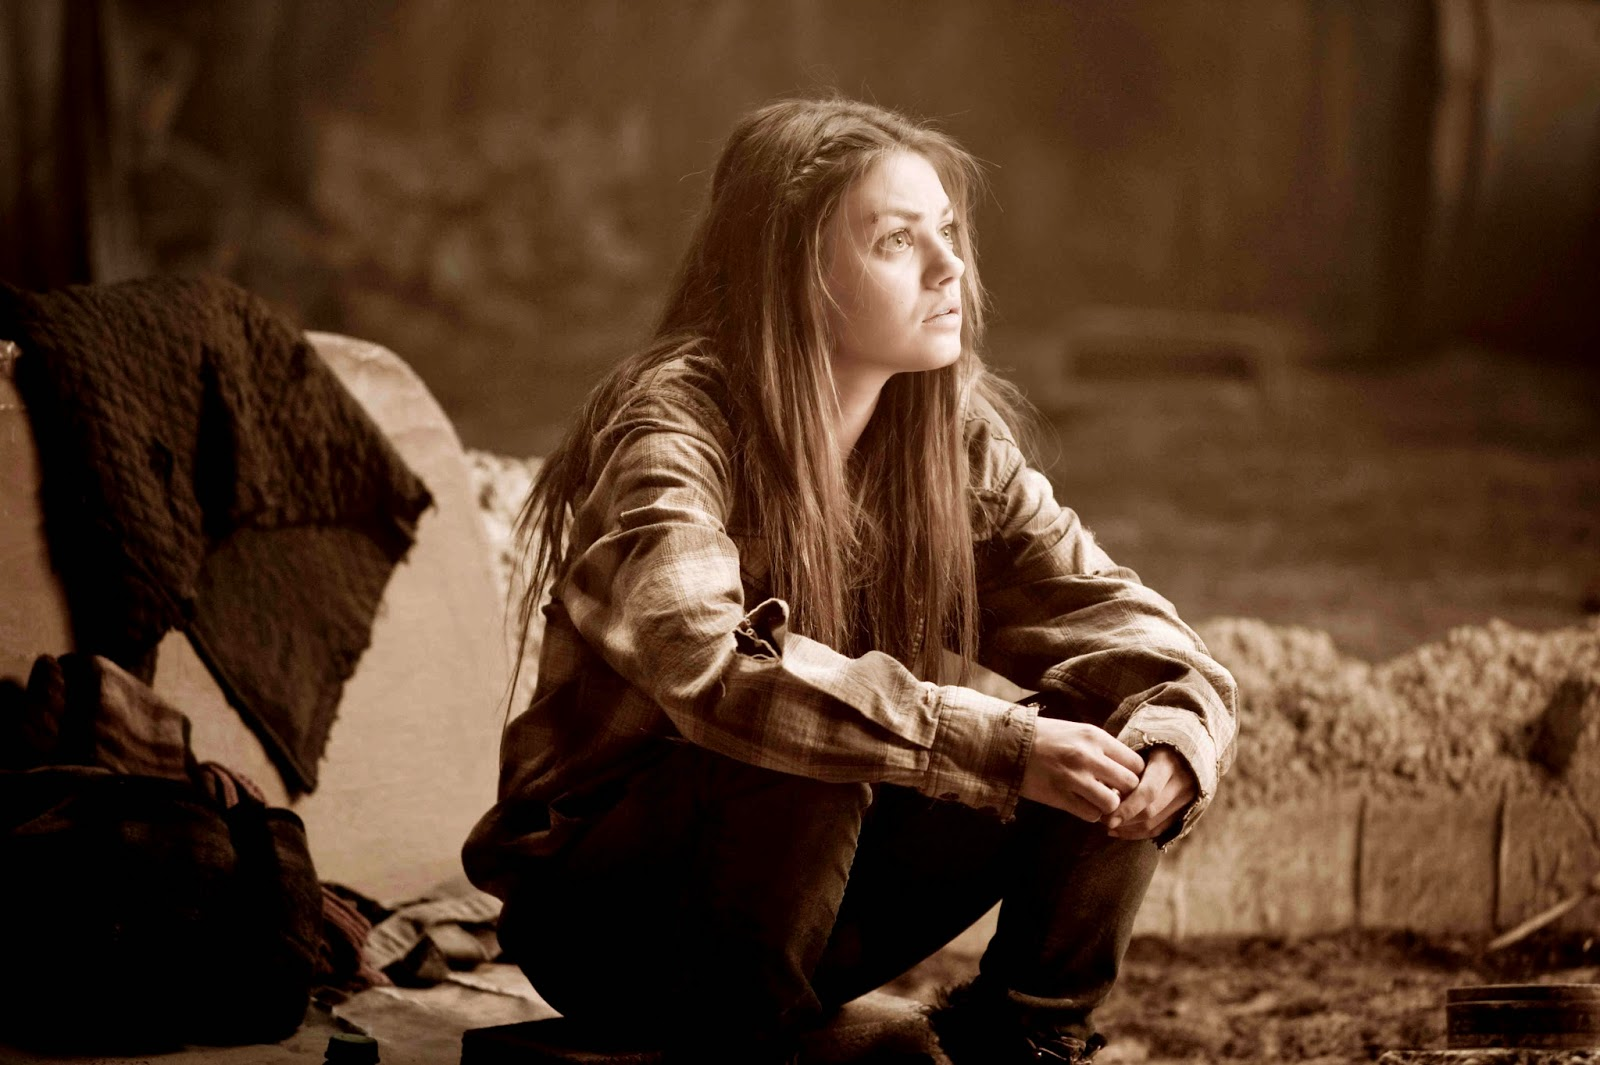 The Book of Eli: Mila Kunis as Solara ponders the universe | A Constantly Racing Mind